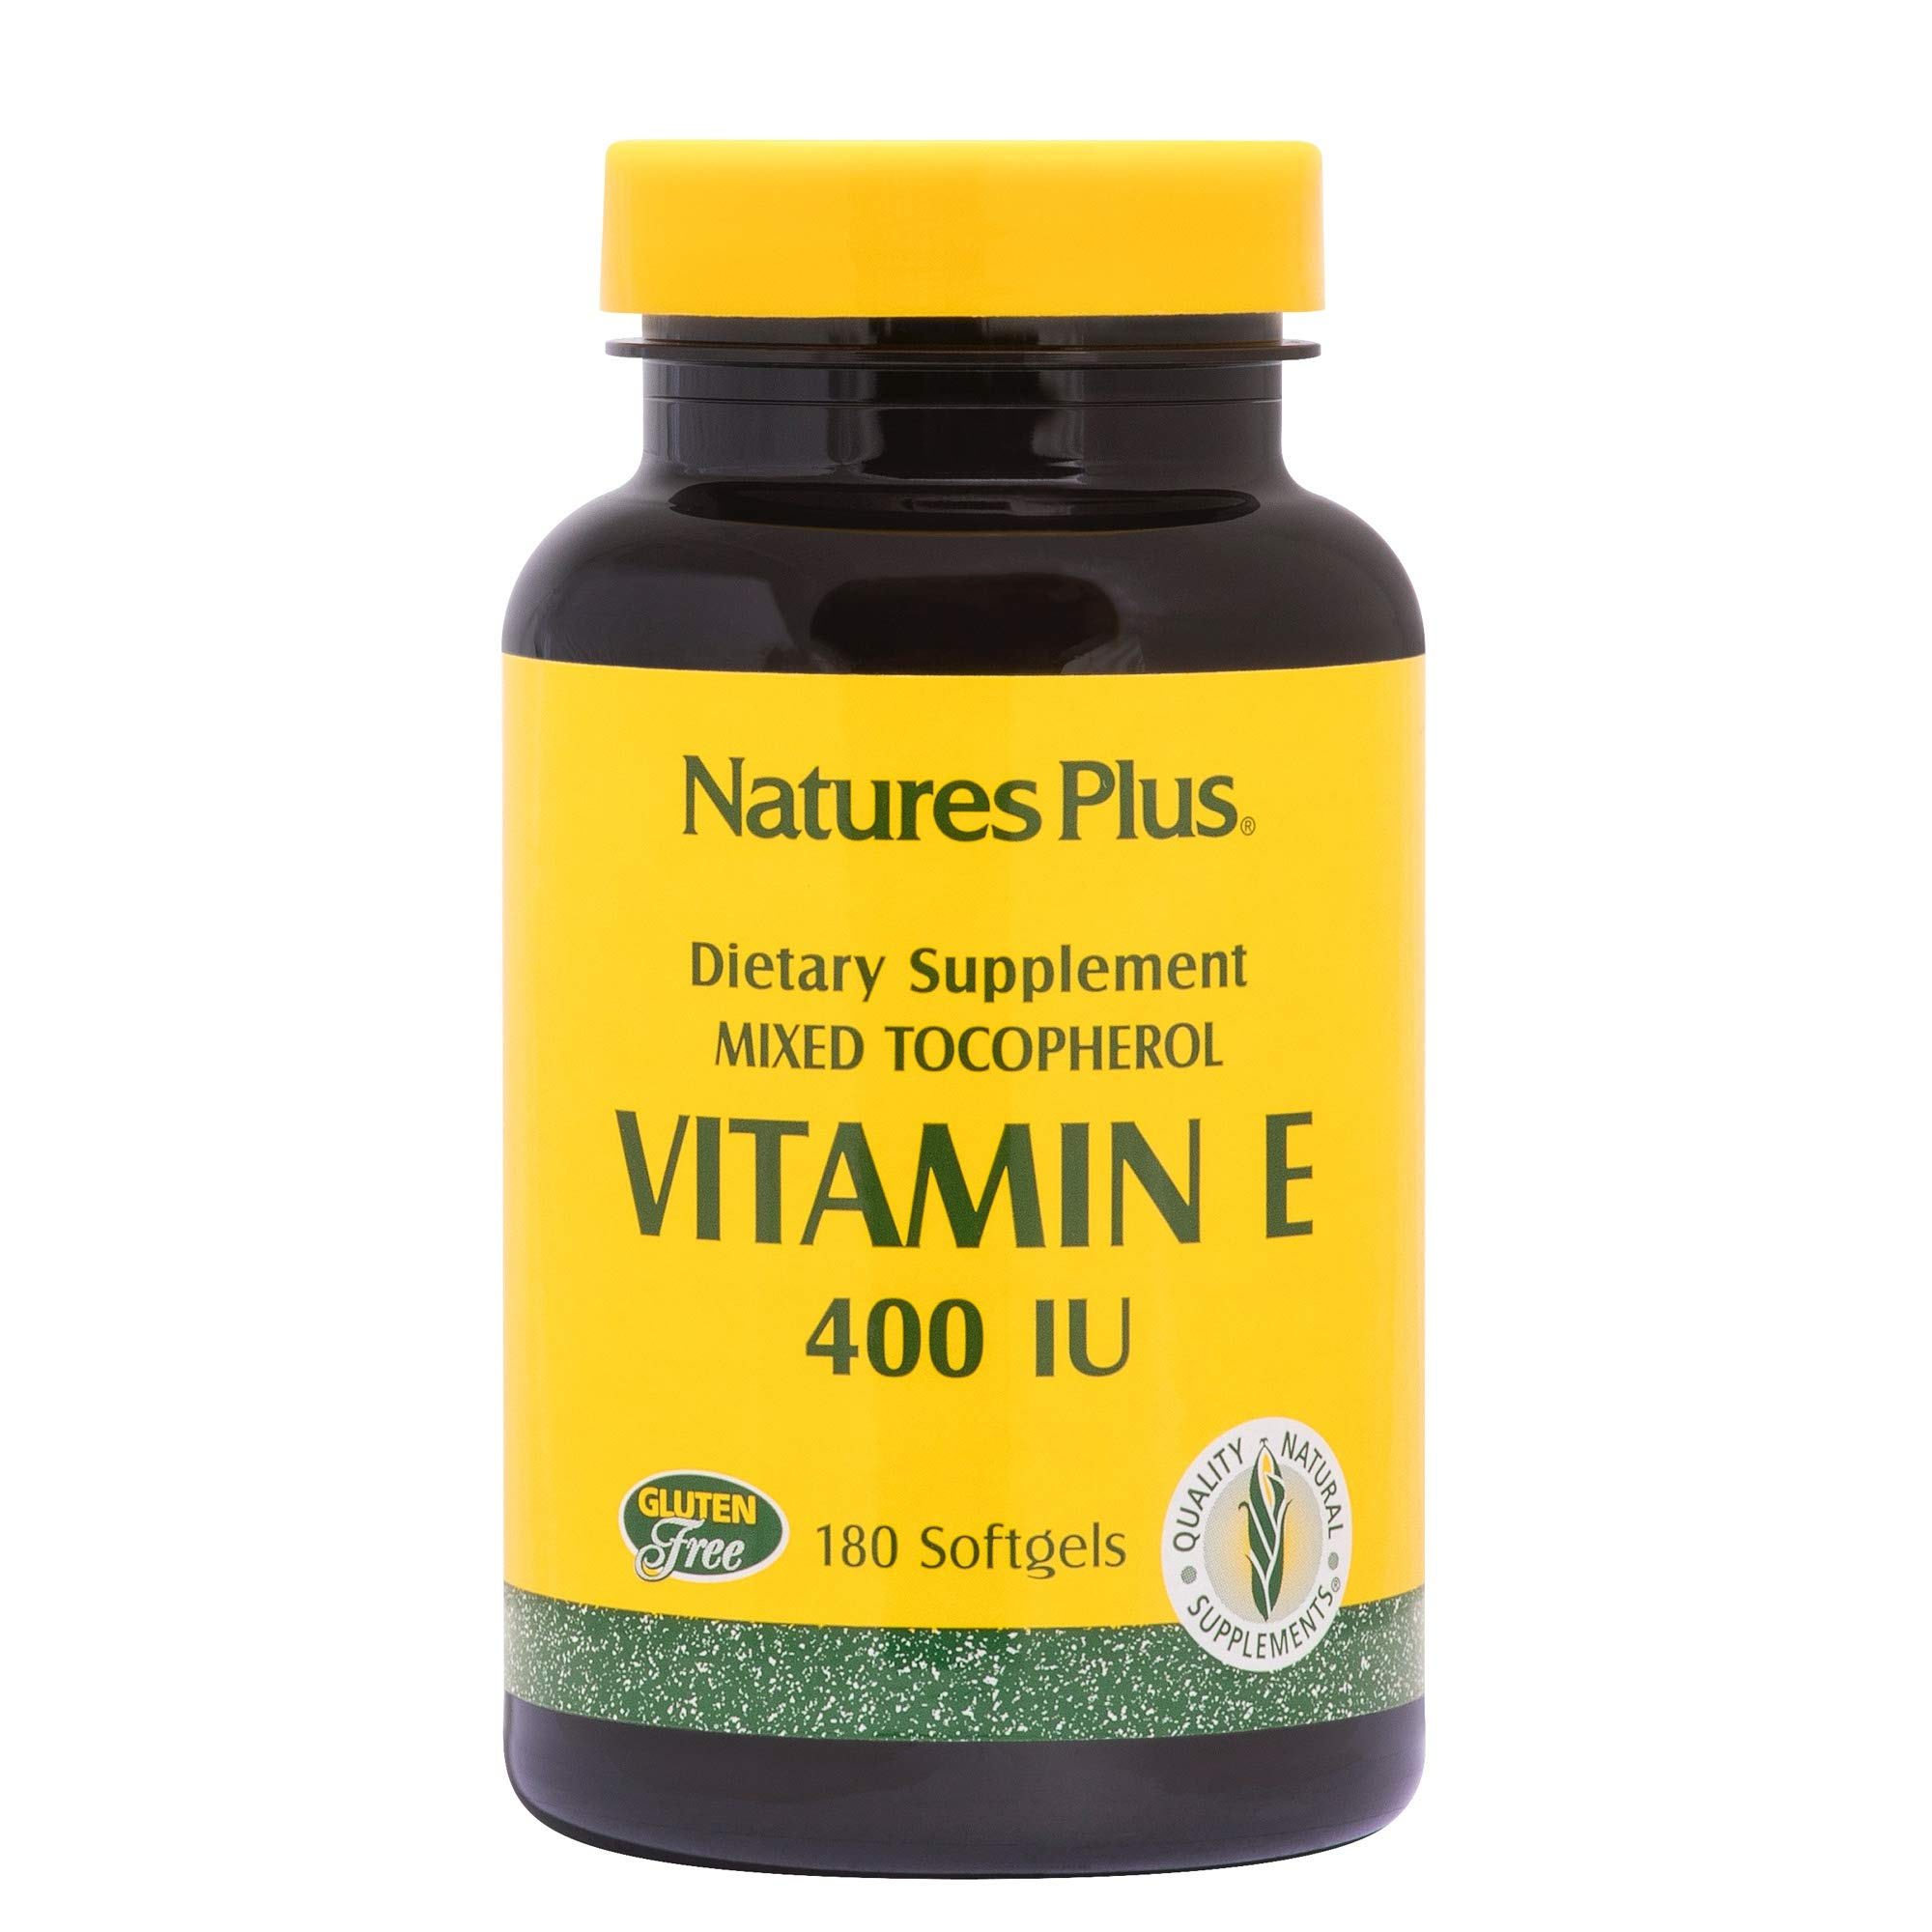 Natures Plus Vitamin E - 400 IU Mixed D-Tocopherol, 180 Softgels - Promotes Healthy Skin, Eyes & Hair, Supports Heart Health, Antioxidant - Gluten Free - 180 Servings